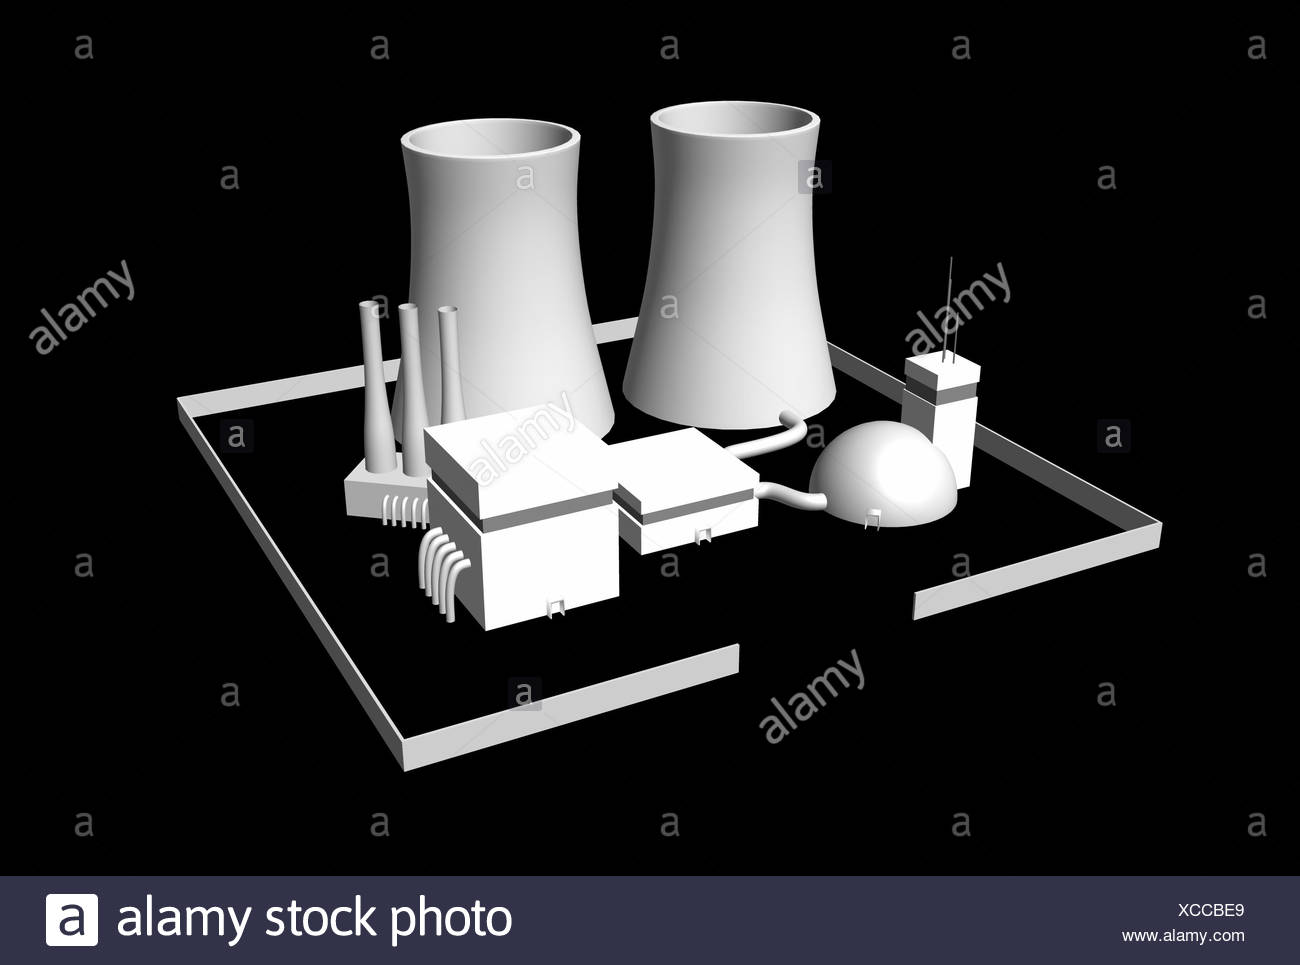 Energy Nuclear Power Plant Black And White Stock Photos Diagram Animation 3d On 01 Image